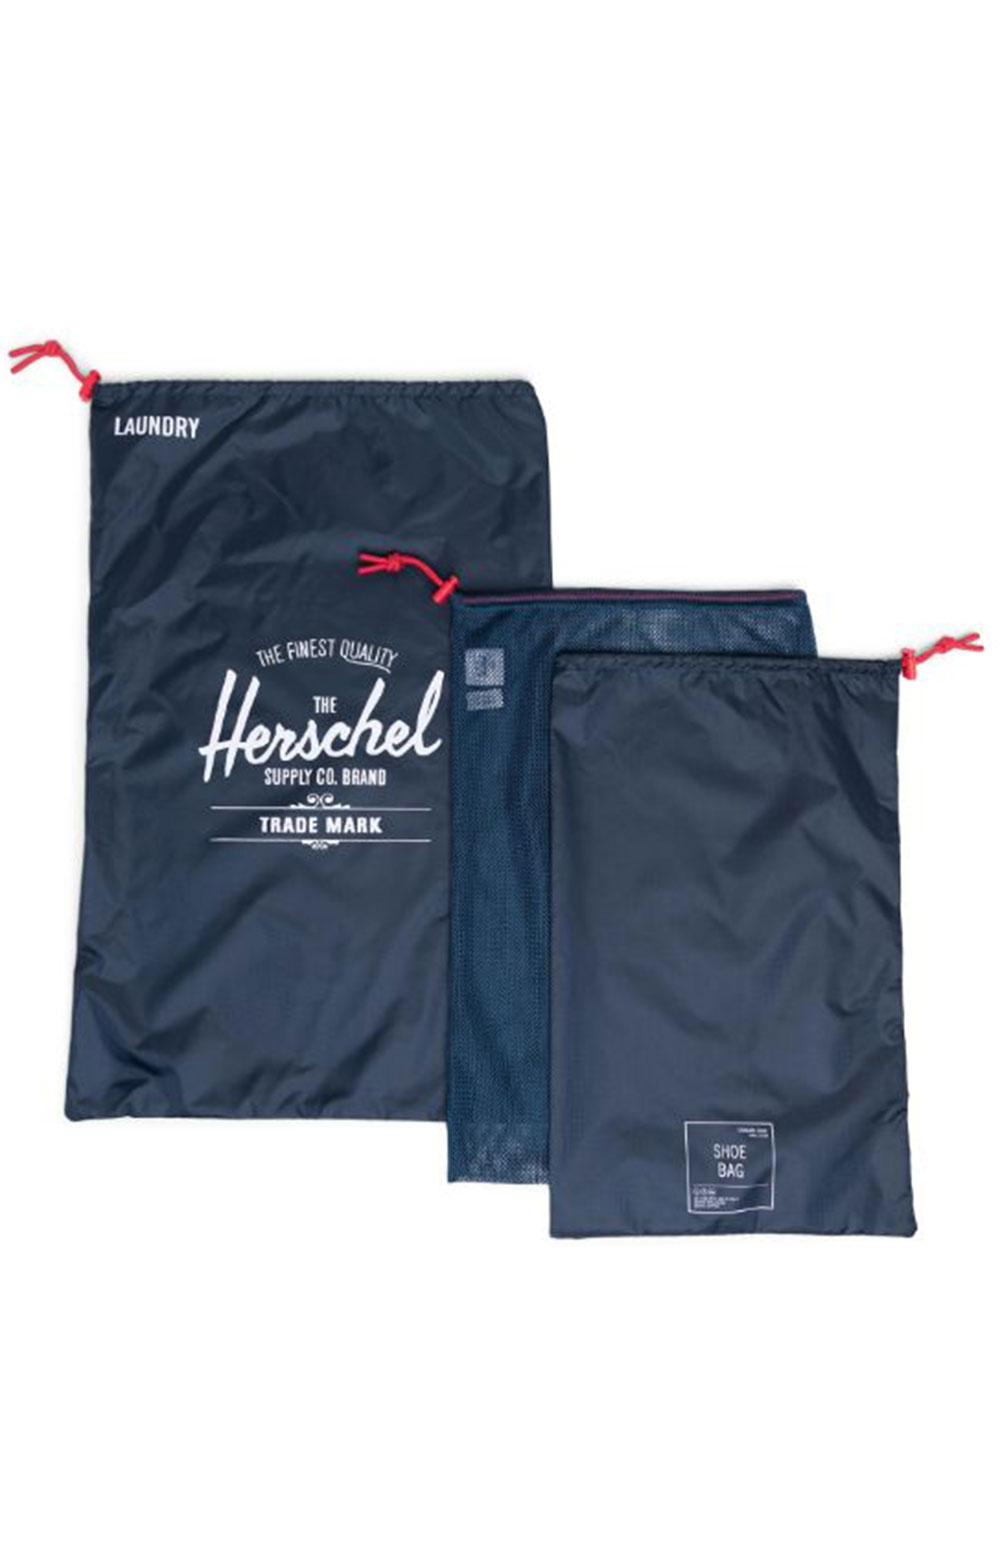 Laundry / Shoe Bag Set - Navy/Red